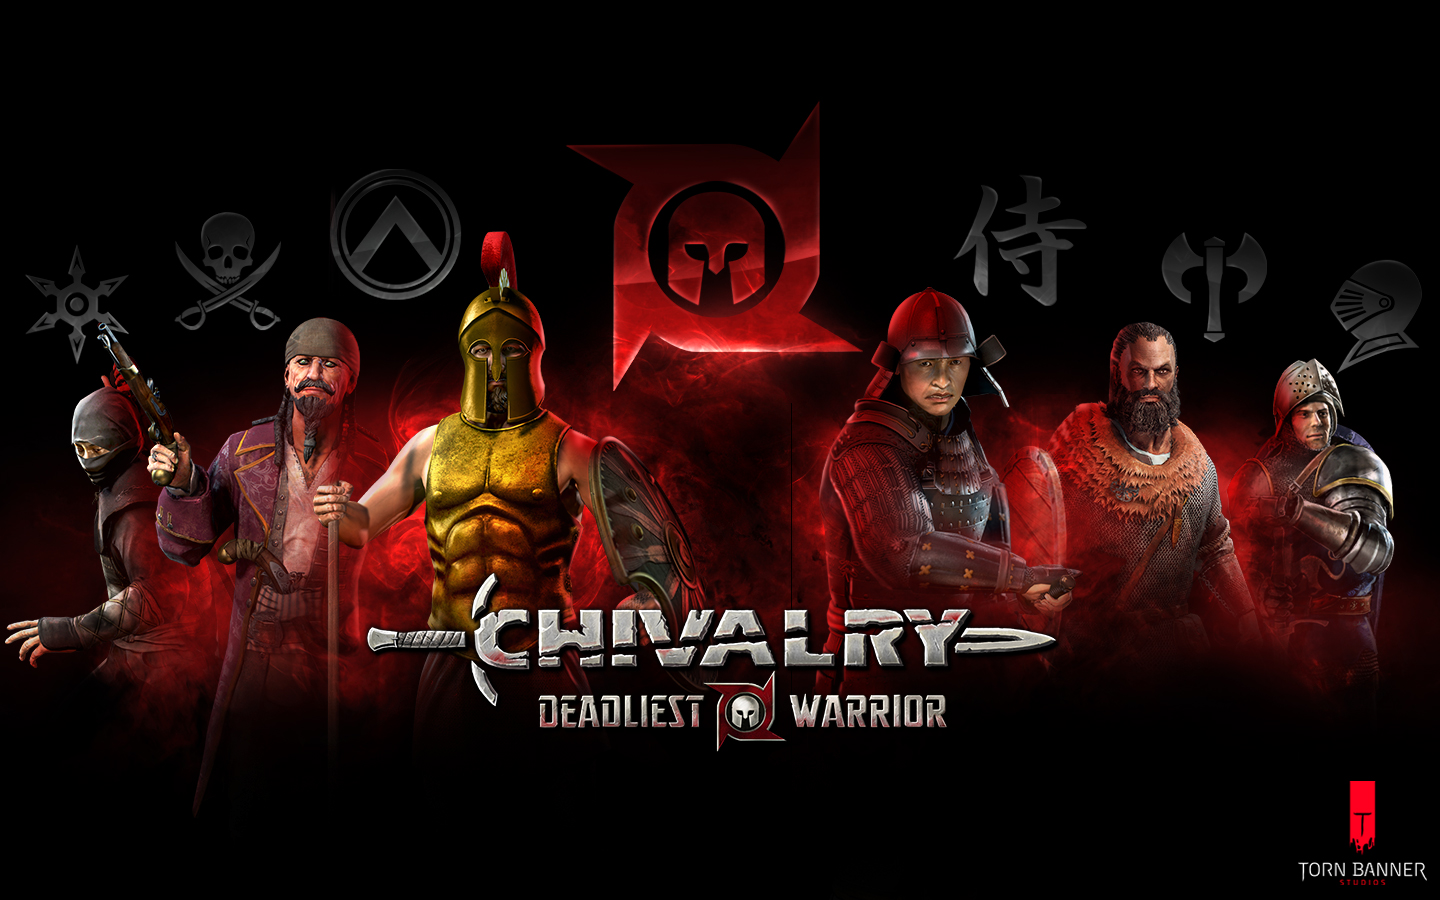 Chivalry: Deadliest Warrior - What every middle school student WANTED history class to be about